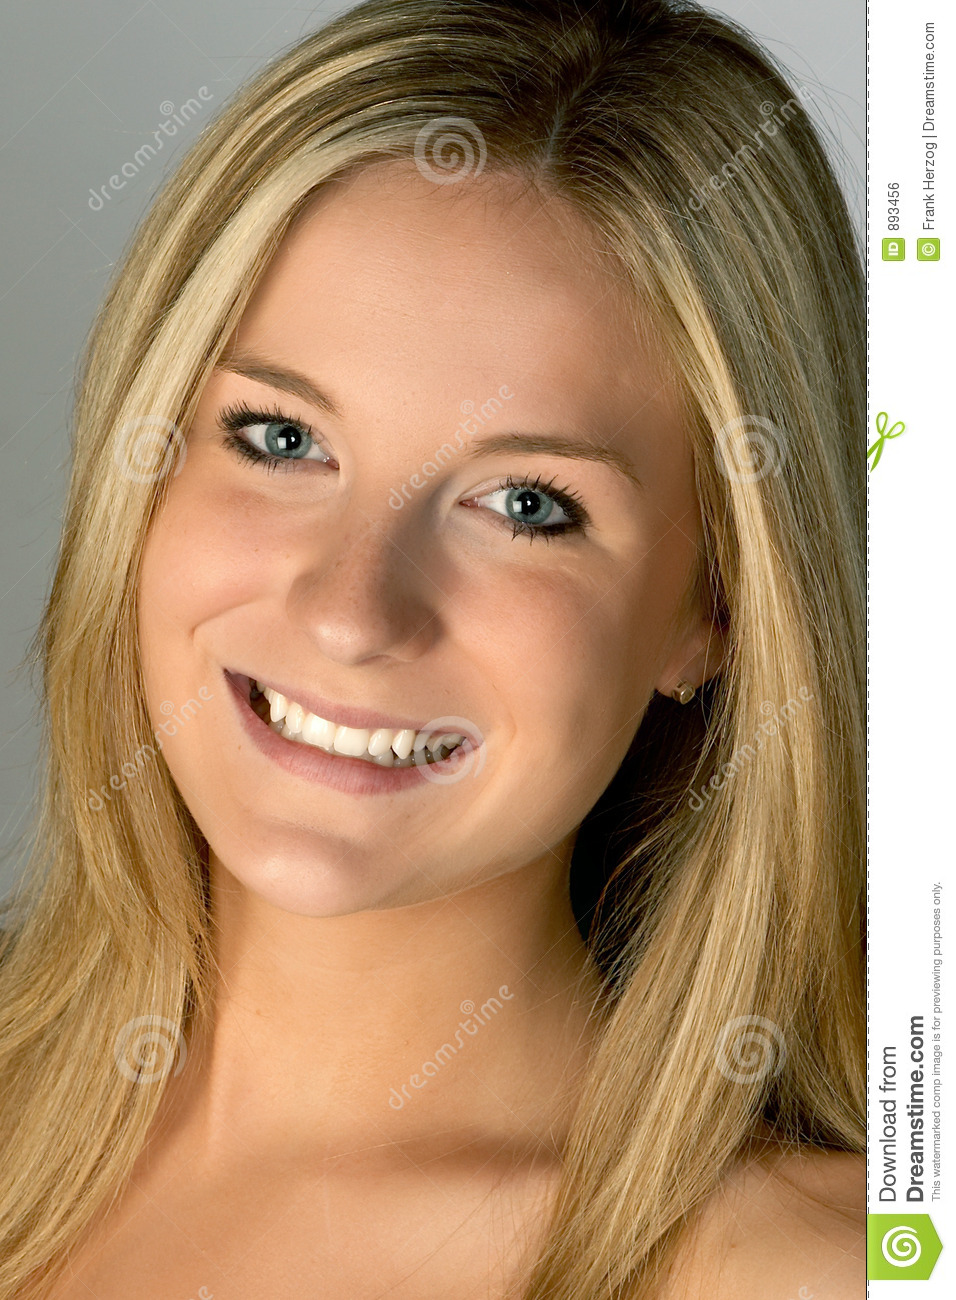 Blonde Woman Smiling Headshot